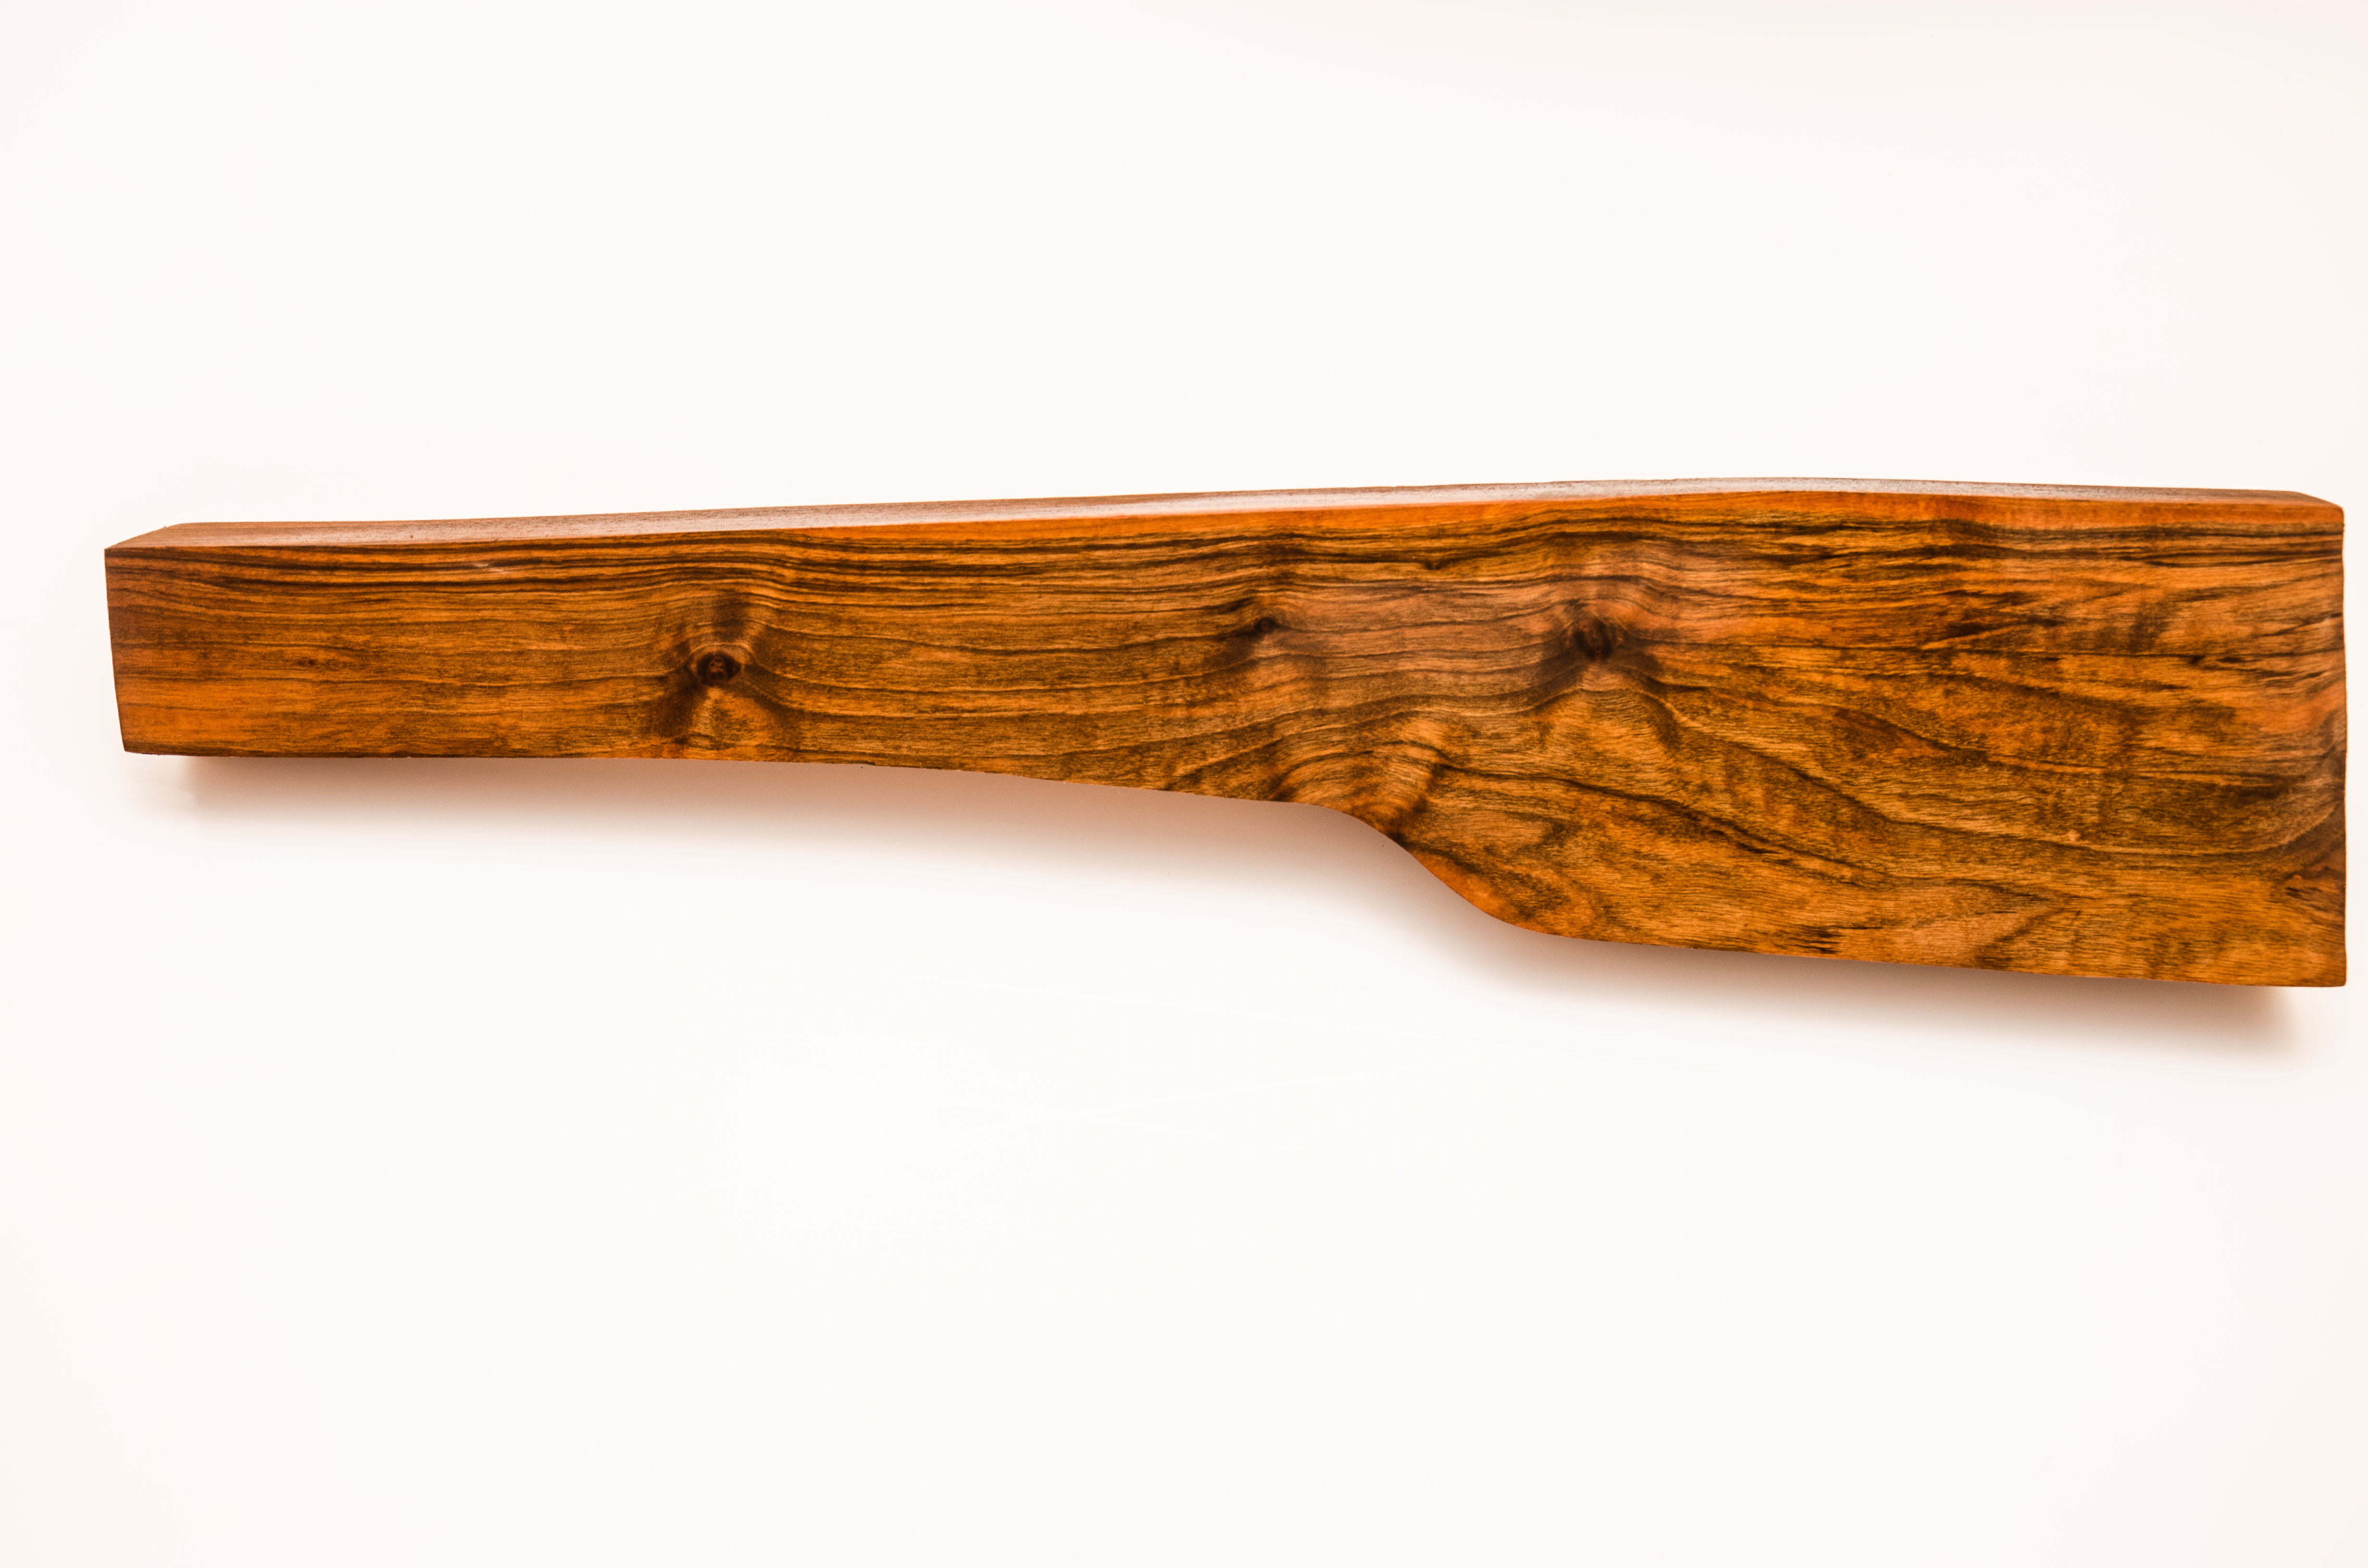 walnut_stock_blanks_for_guns_and_rifles-1197